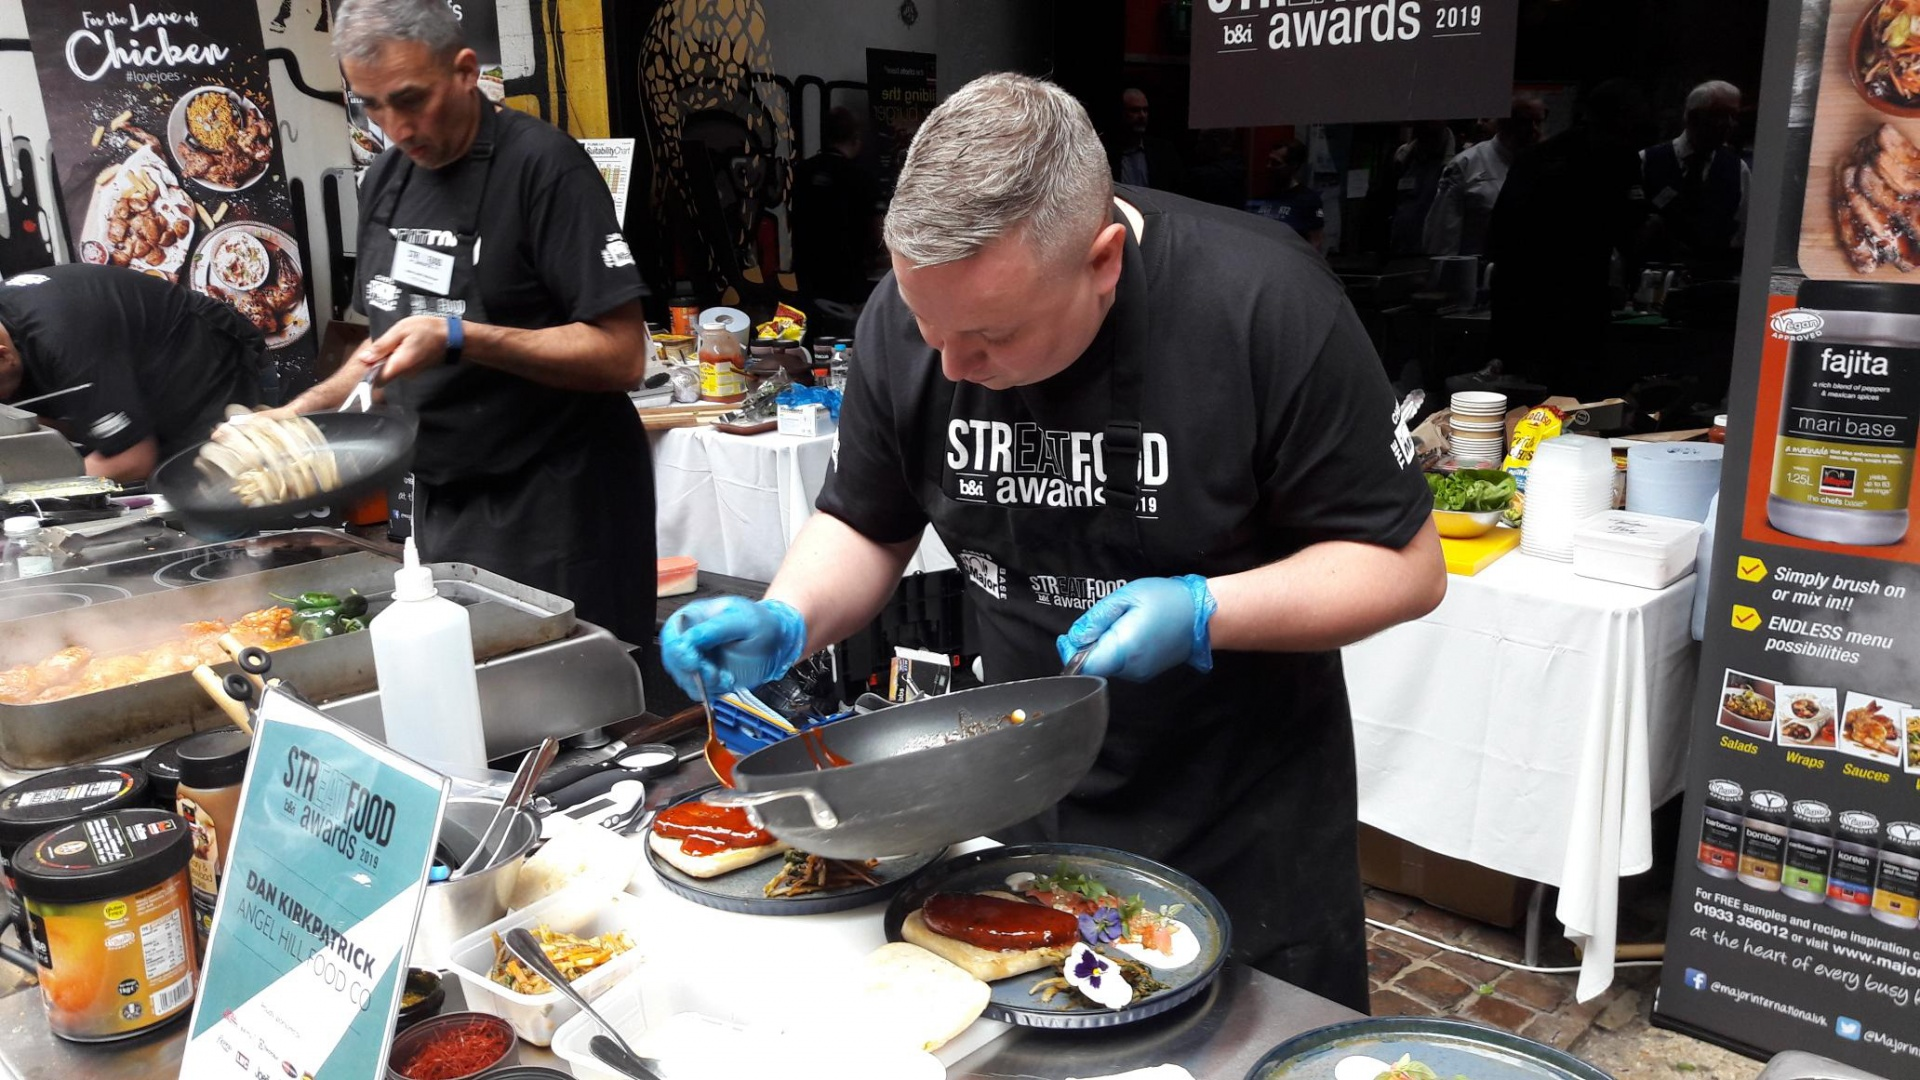 Dan Kirkpatrick winning StrEATfood Awards Competition